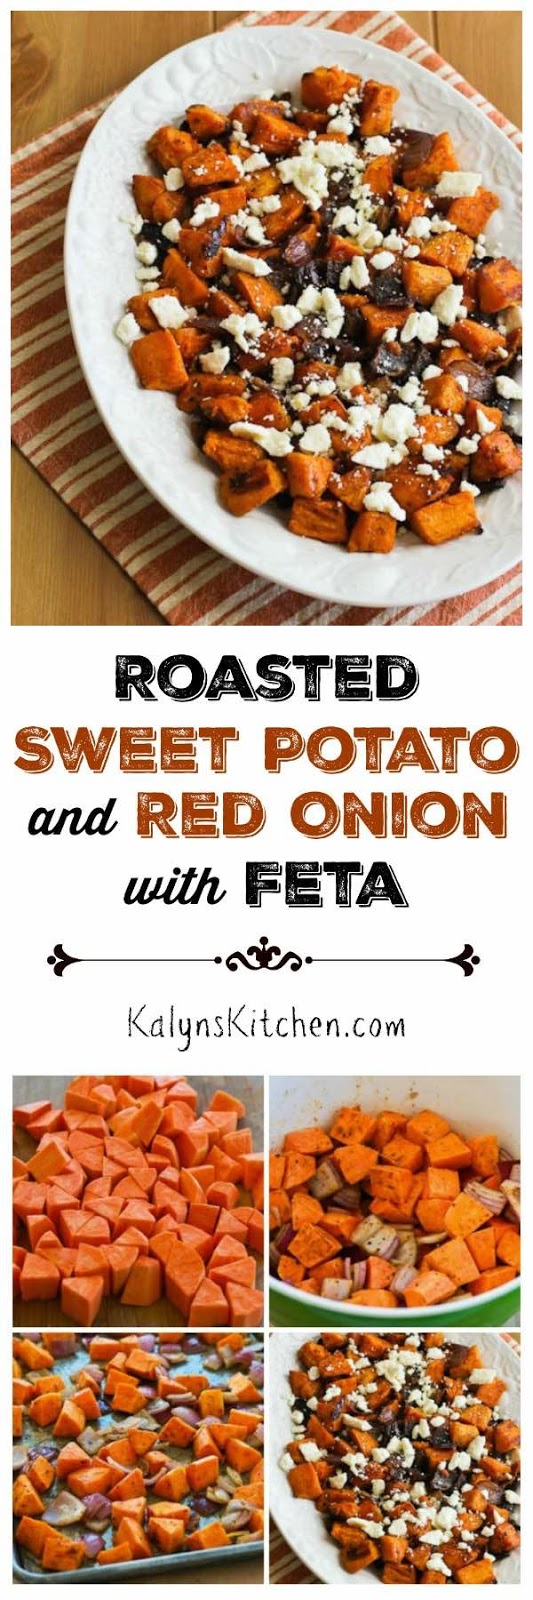 Kalyn's Kitchen®: Roasted Sweet Potatoes and Red Onions with Feta